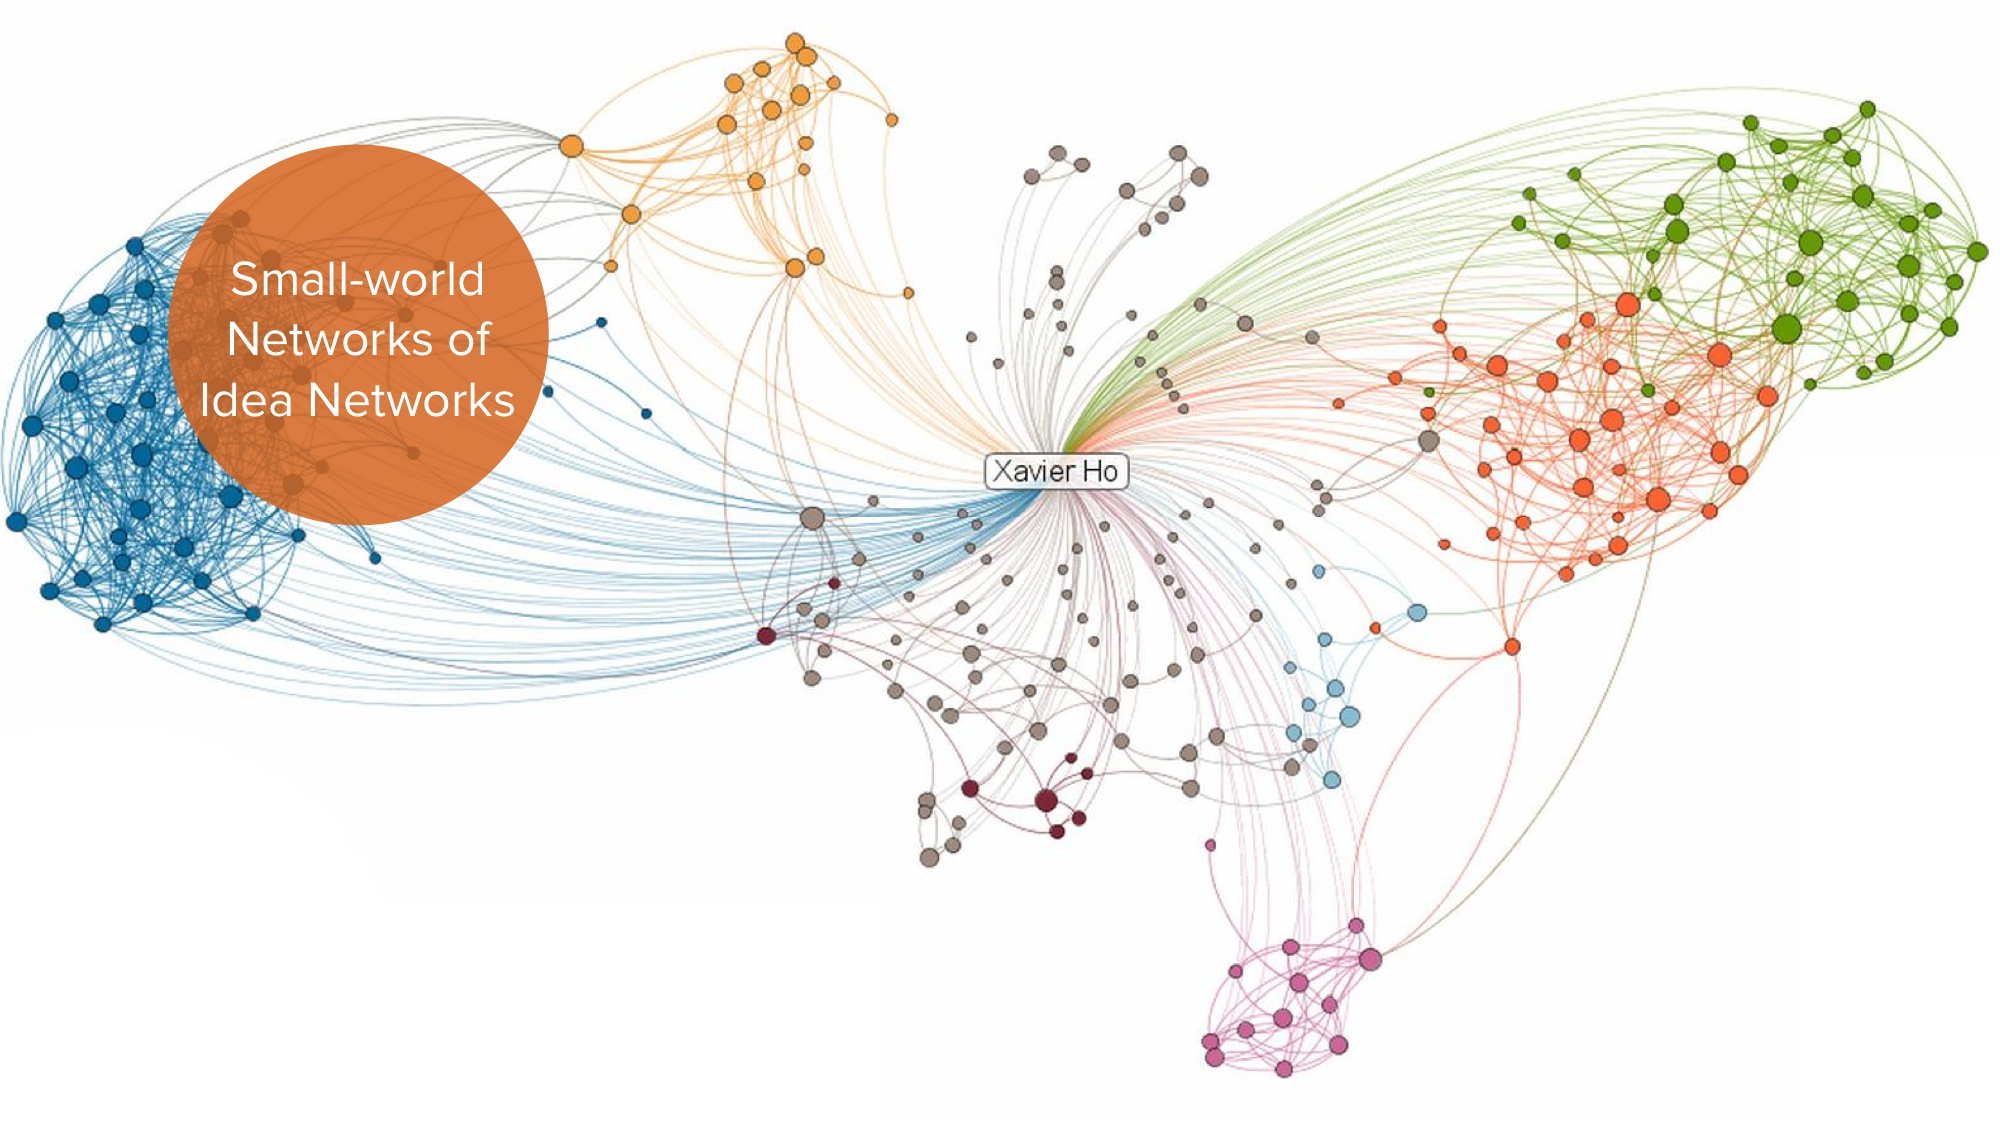 2014.10.17 - -How Are Ideas Connected- Drawing the Design Process of Idea Networks in Global Game Jam- - Meaningful Play 2014 23.jpeg